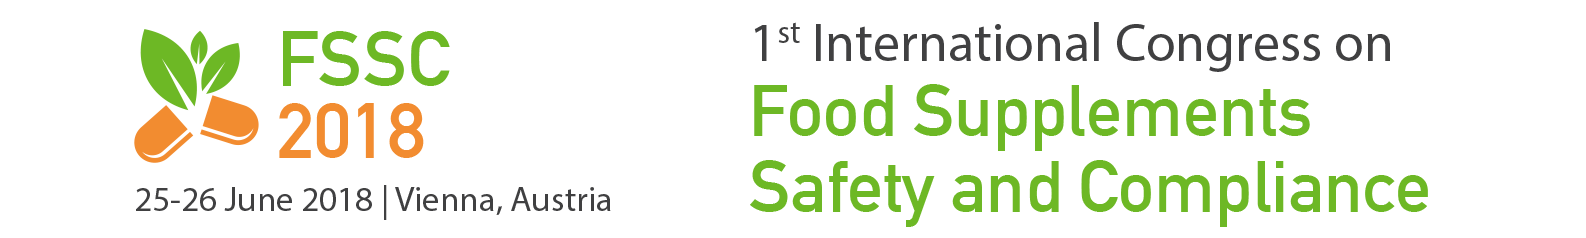 1st International Congress on Safety and Compliance of Food Supplements and Nutraceuticals in EU